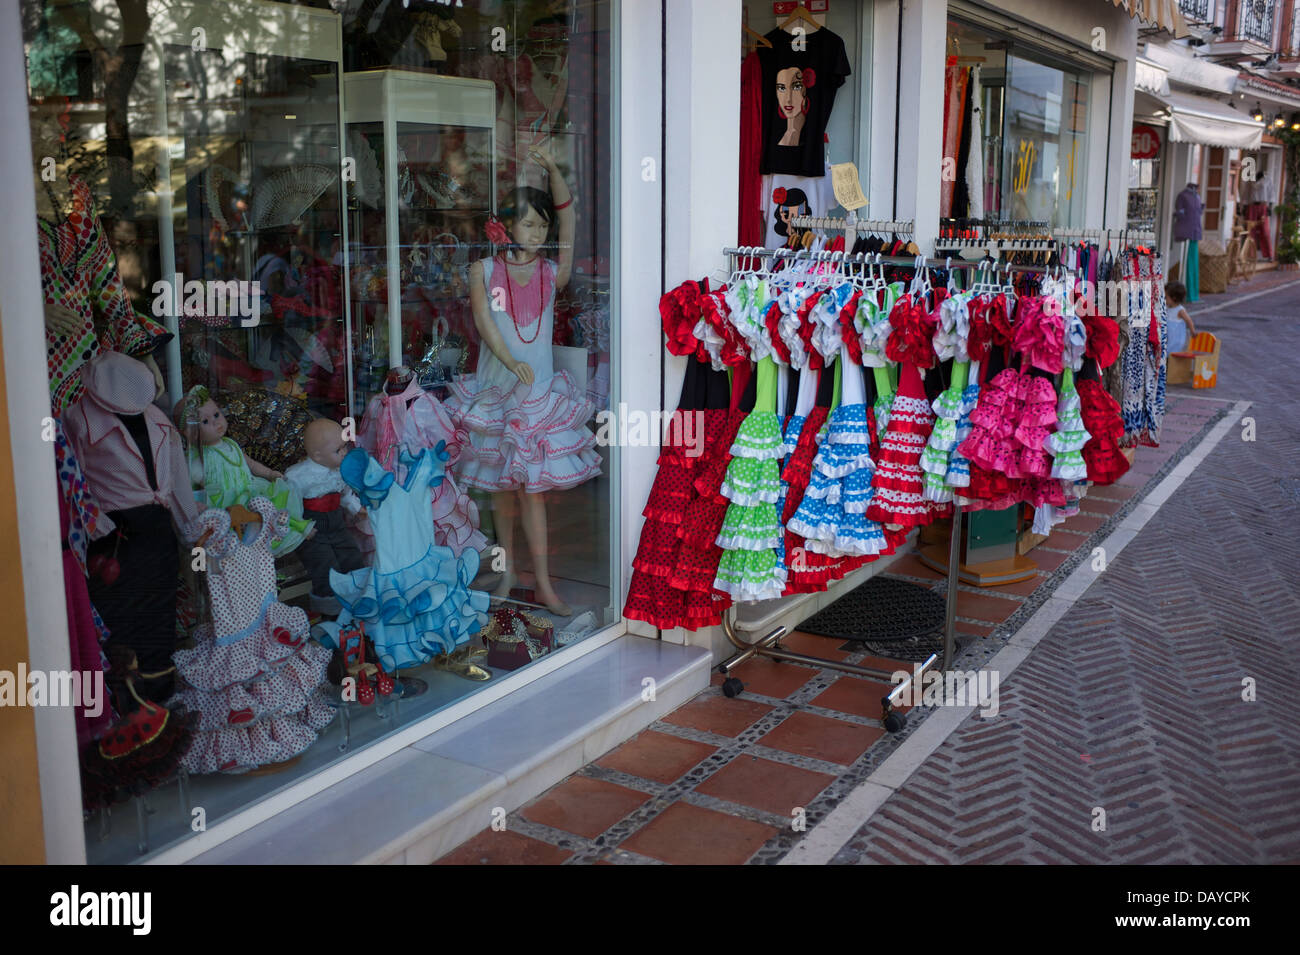 Spain,flamenco,market,summer,fashion,spanish,clothing,souvenir,classical,latin,frills,national,embroidery,typical,clothes,red, - Stock Image